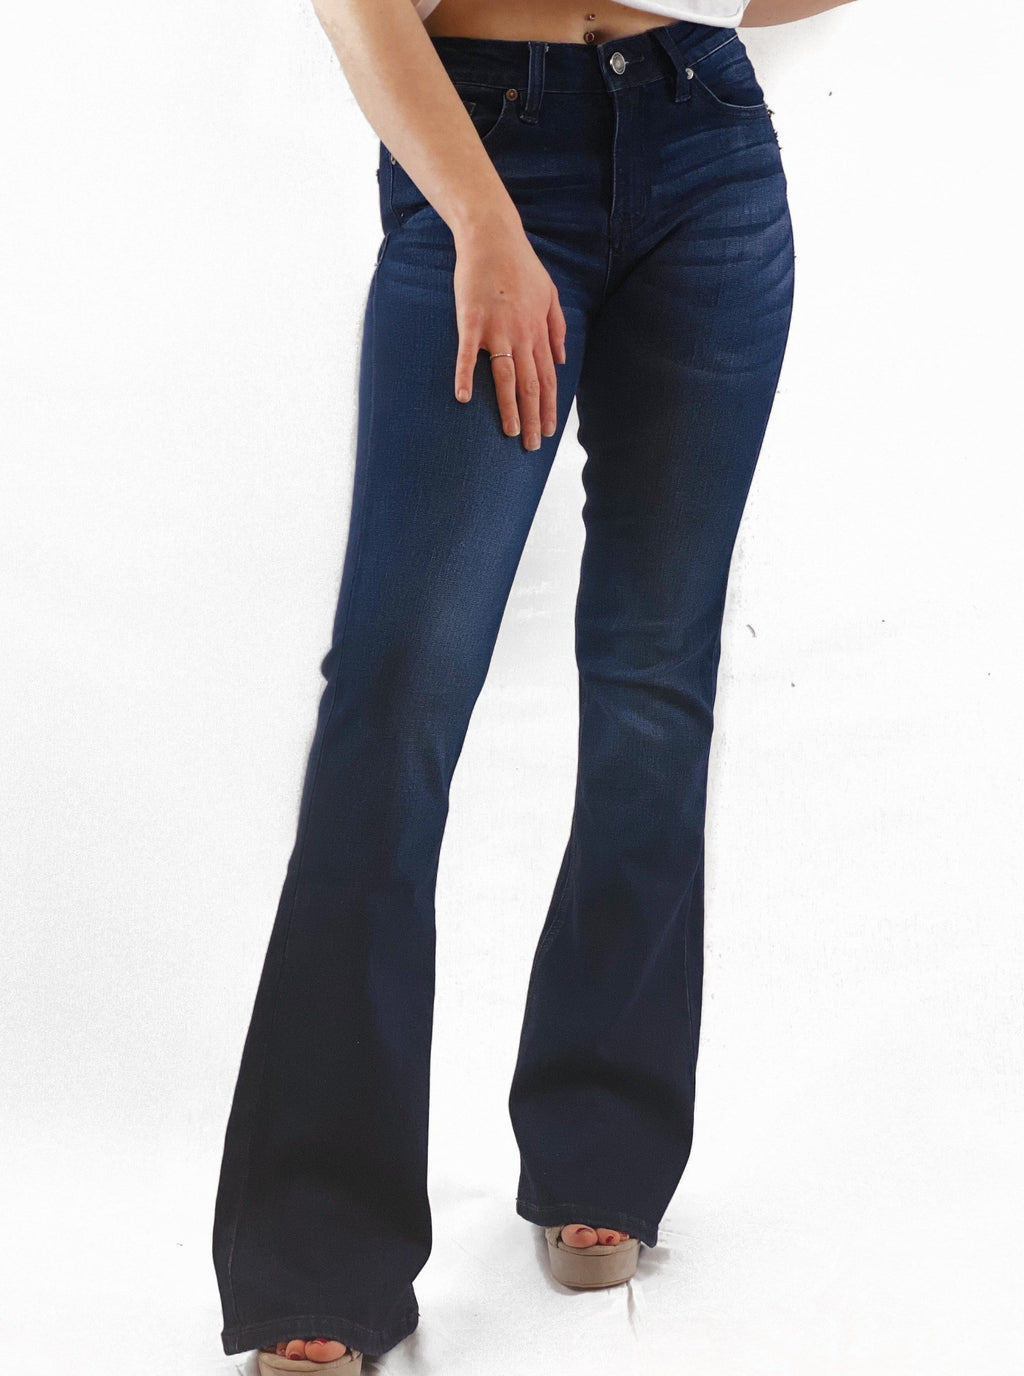 Dark Wash Flare Jeans - bigcityboutique